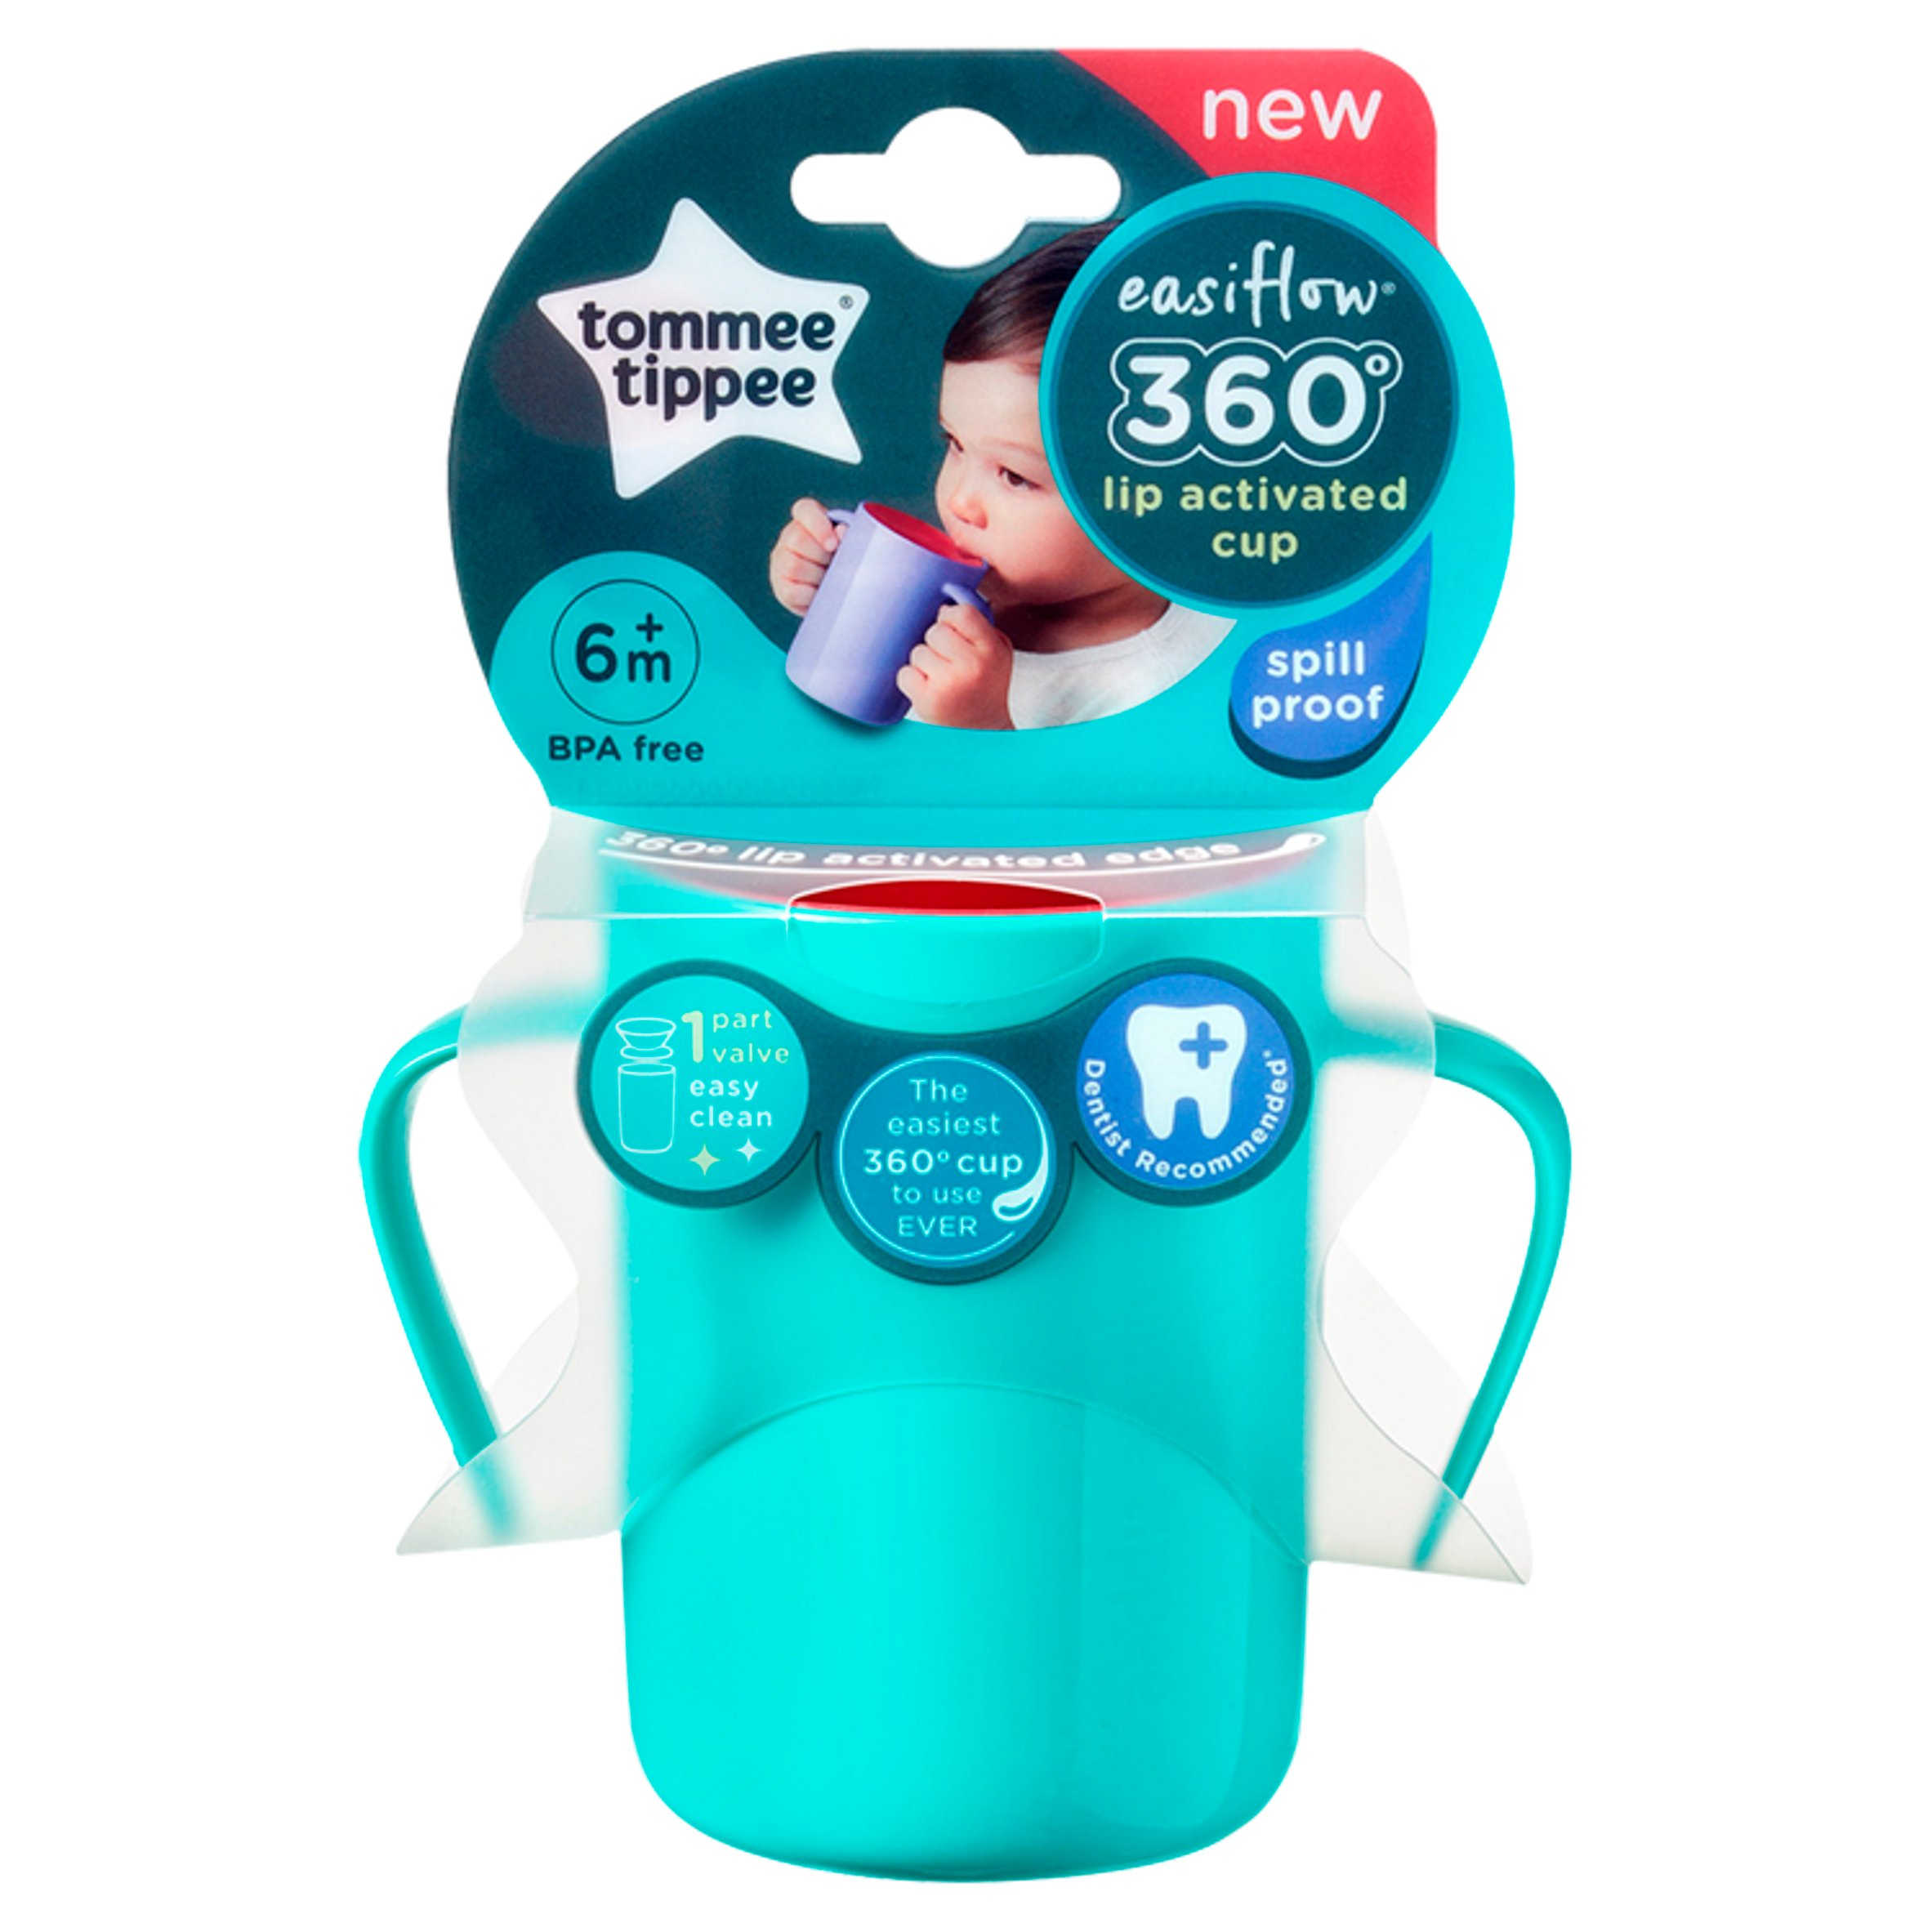 Tommee Tippee 360 Handled Cup 6M+